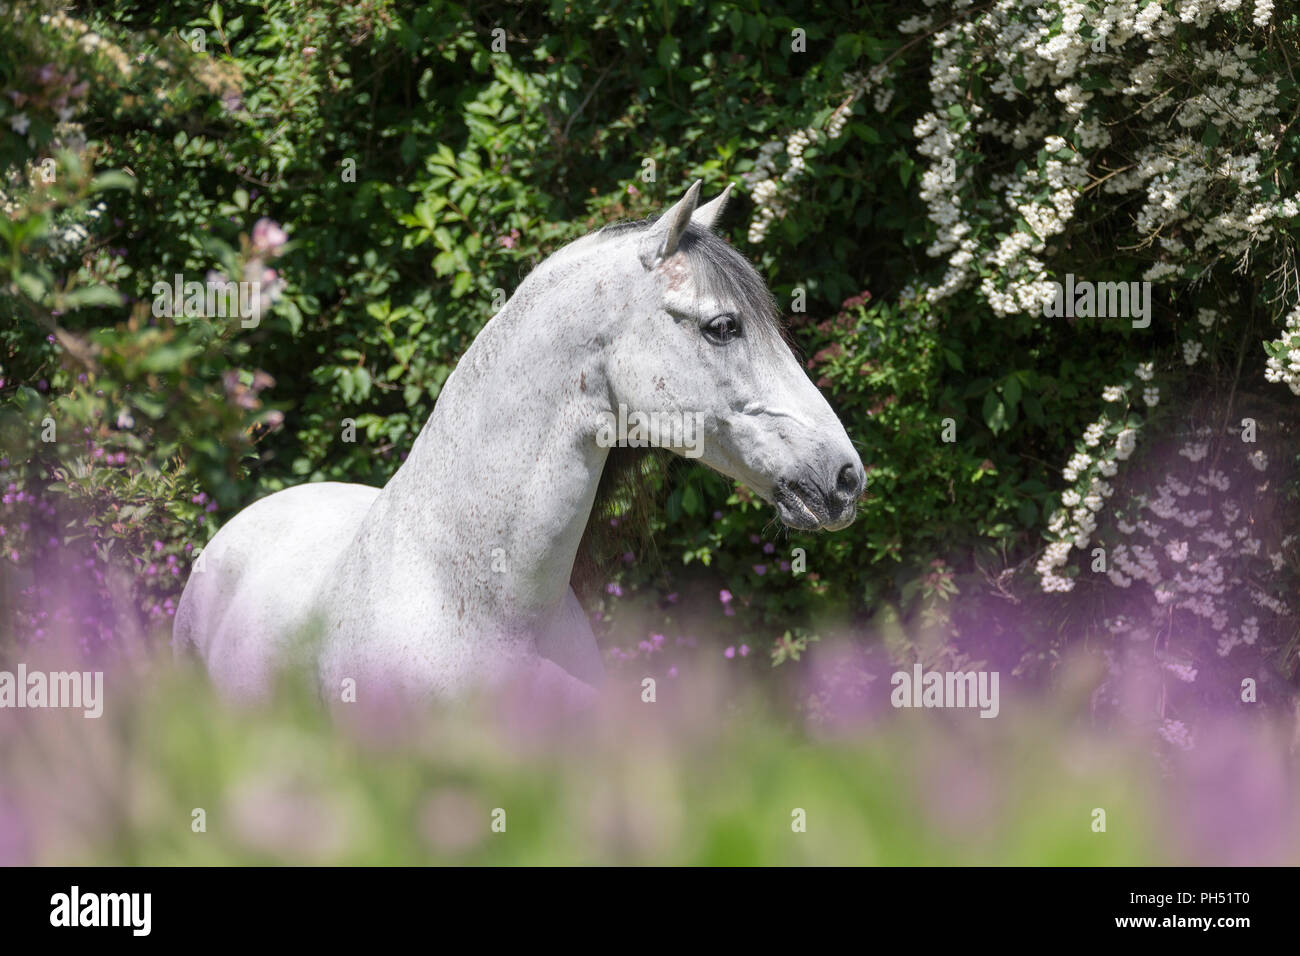 Pure Spanish Horse, PRE, Andalusian Horse. Grey stallion standing on a flowering meadow with hawthorn in background. Austria - Stock Image